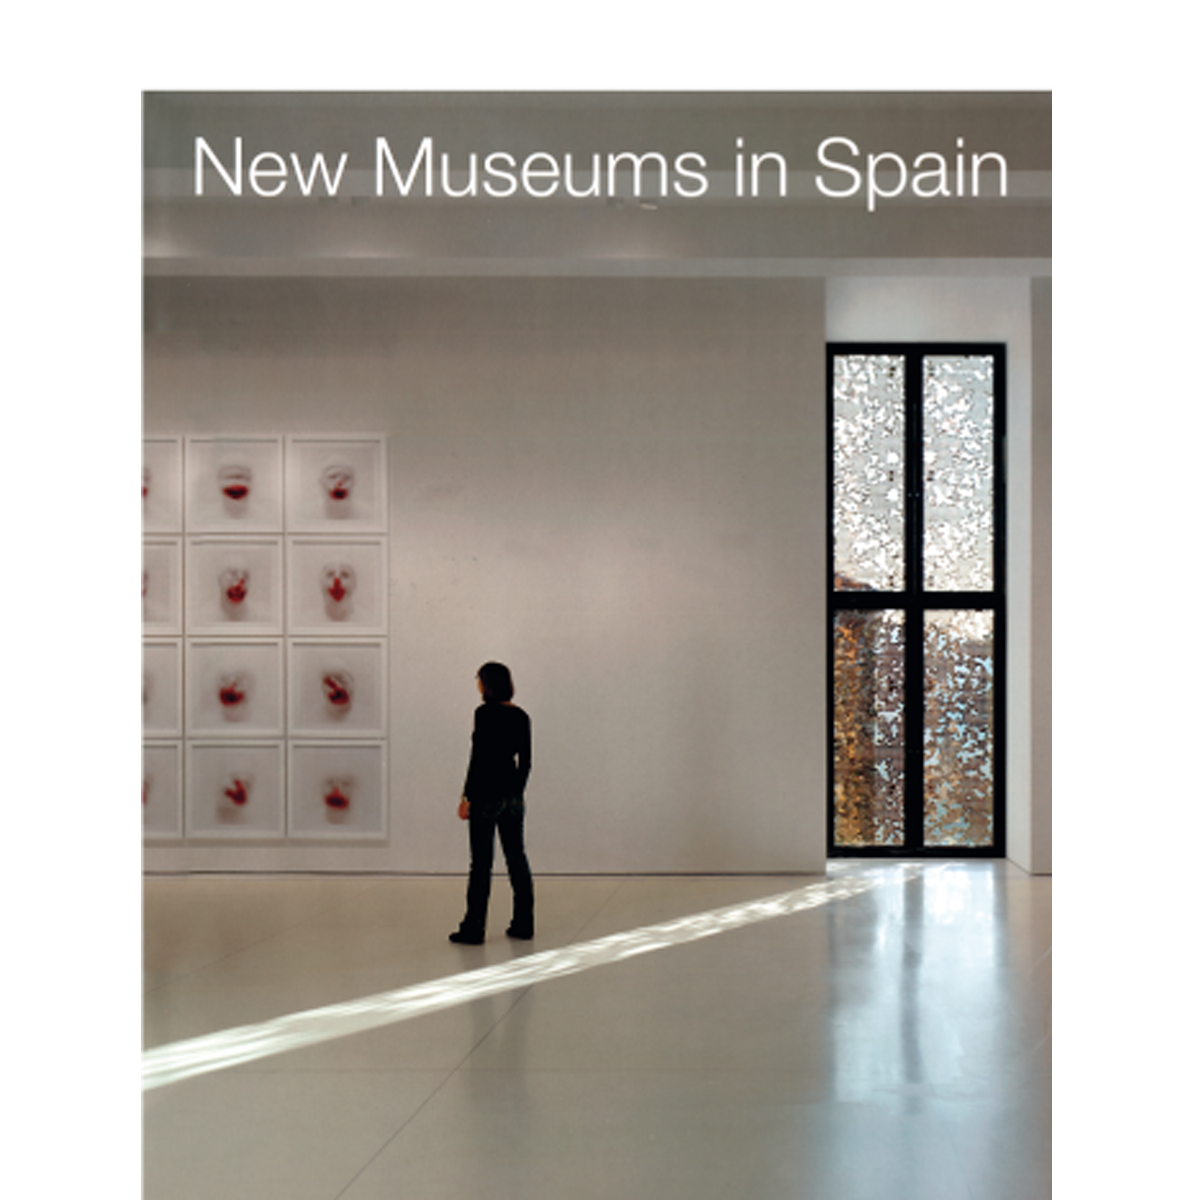 New Museums in Spain